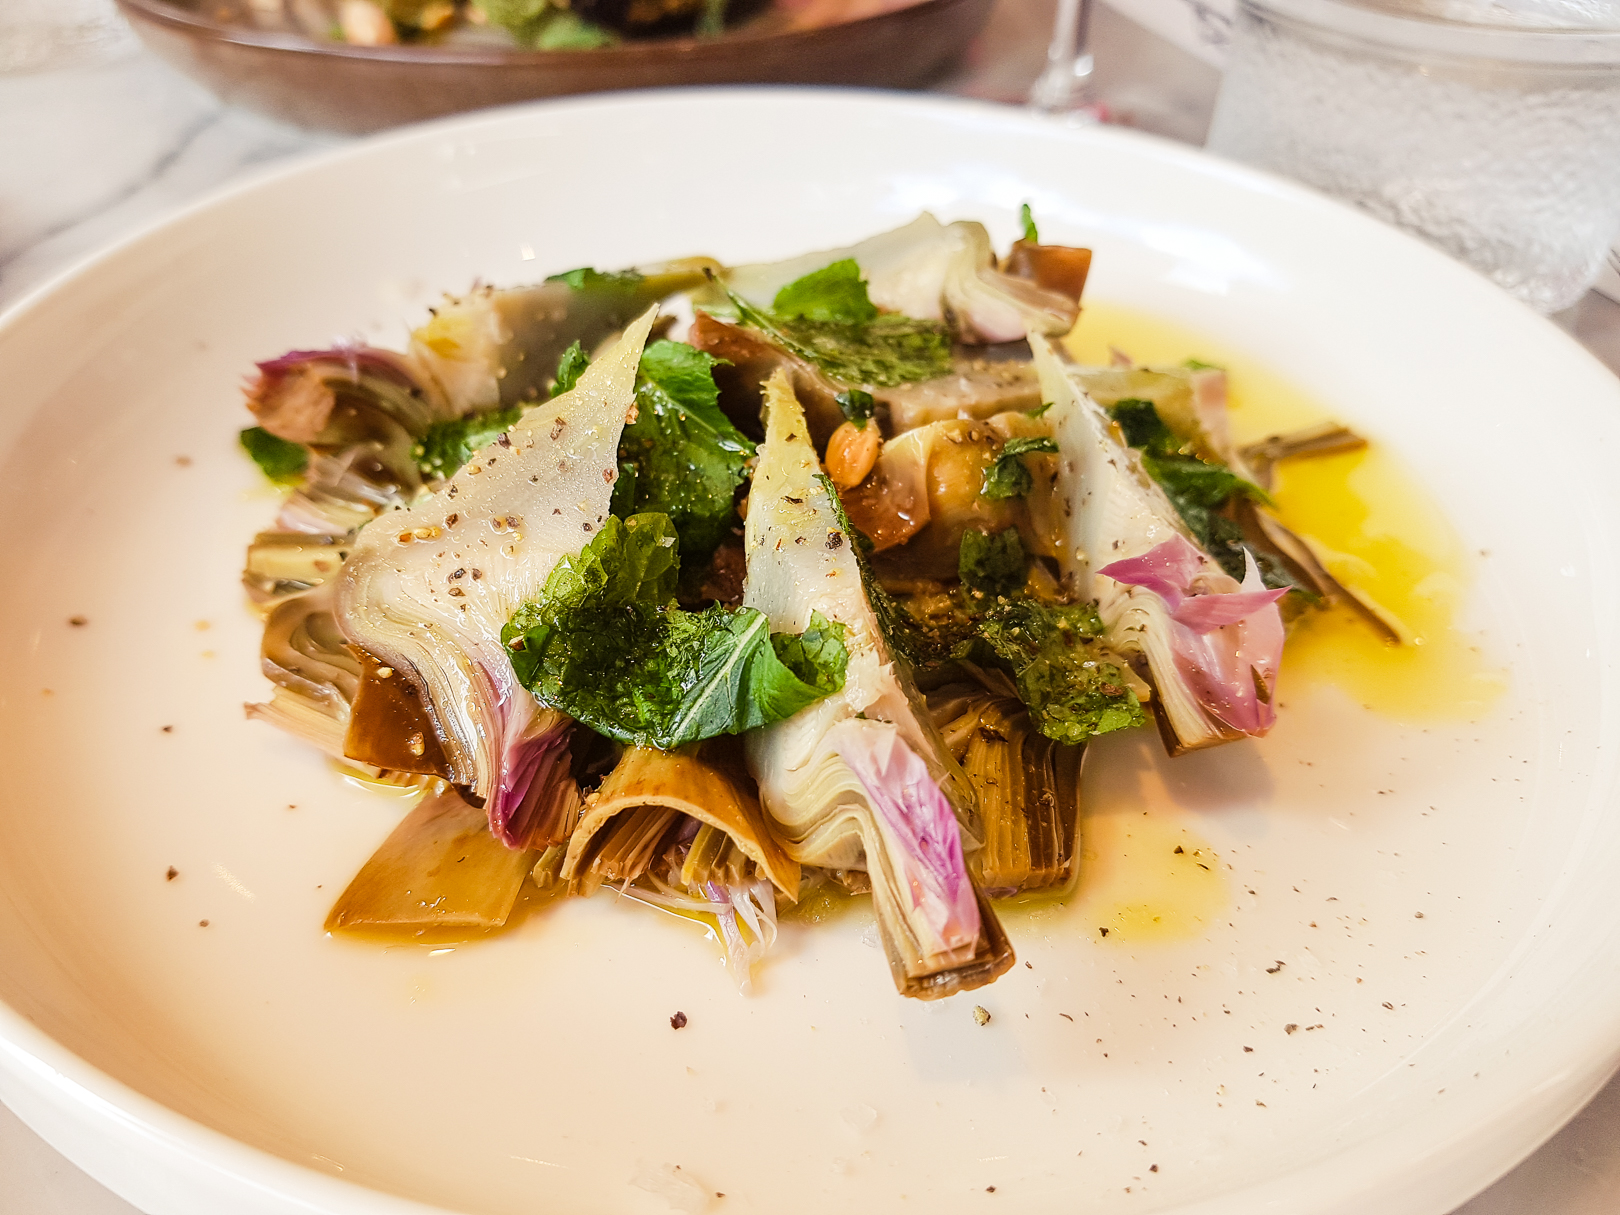 Artichoke, mint and lemon salad at Eusebi Deli in Glasgow.